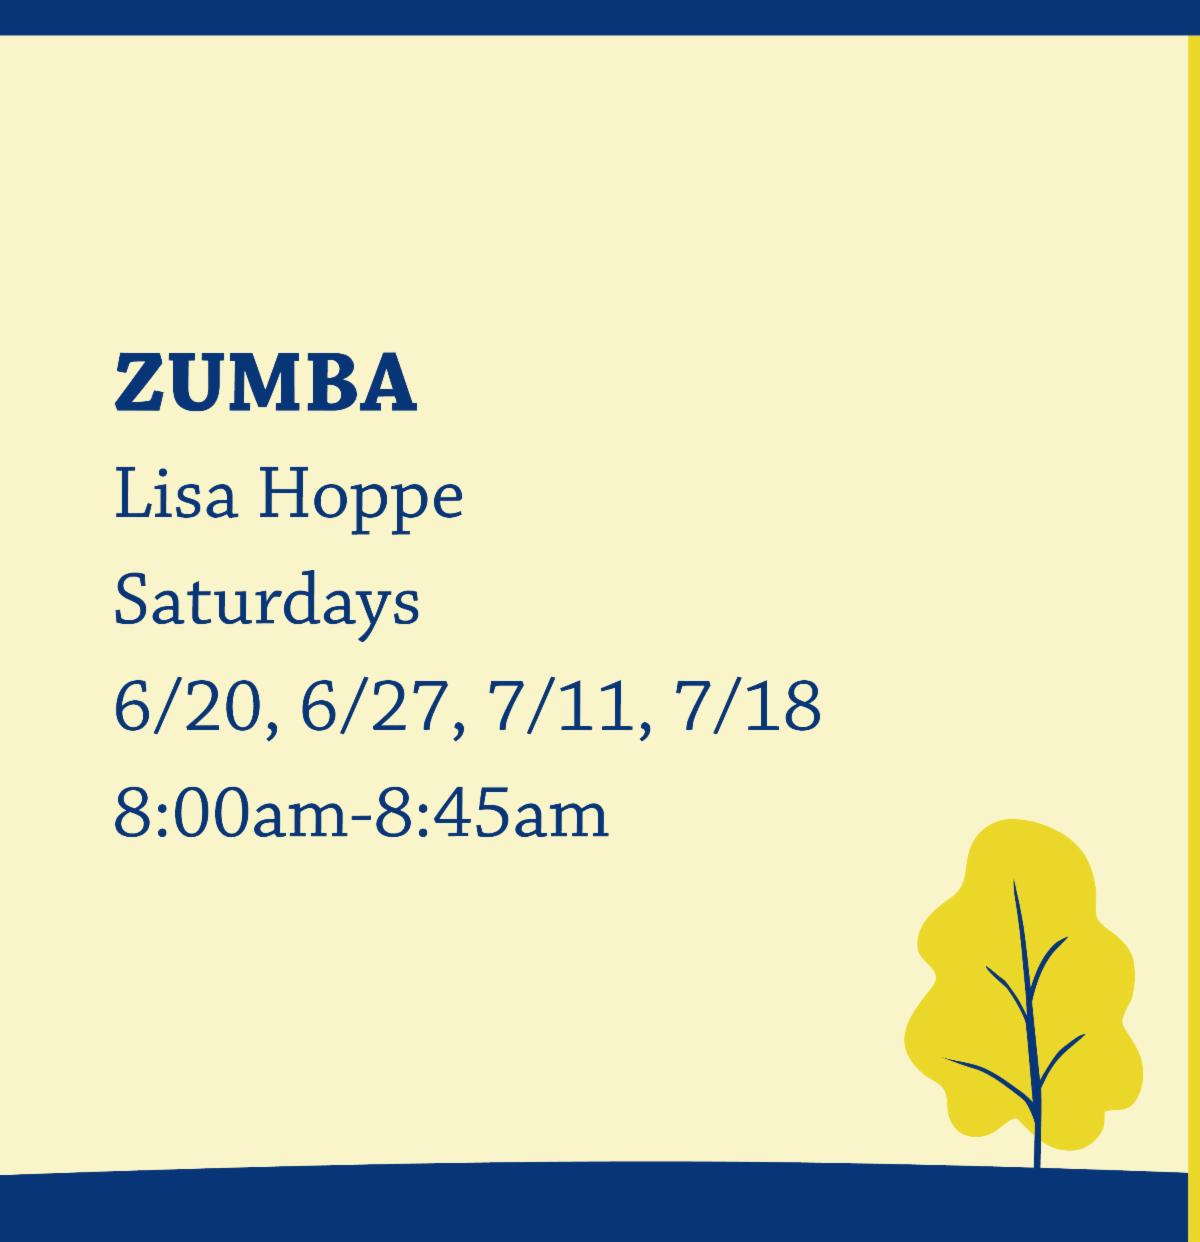 Zumba with Lisa Hoppe on Saturdays from 8:00am-8:45am